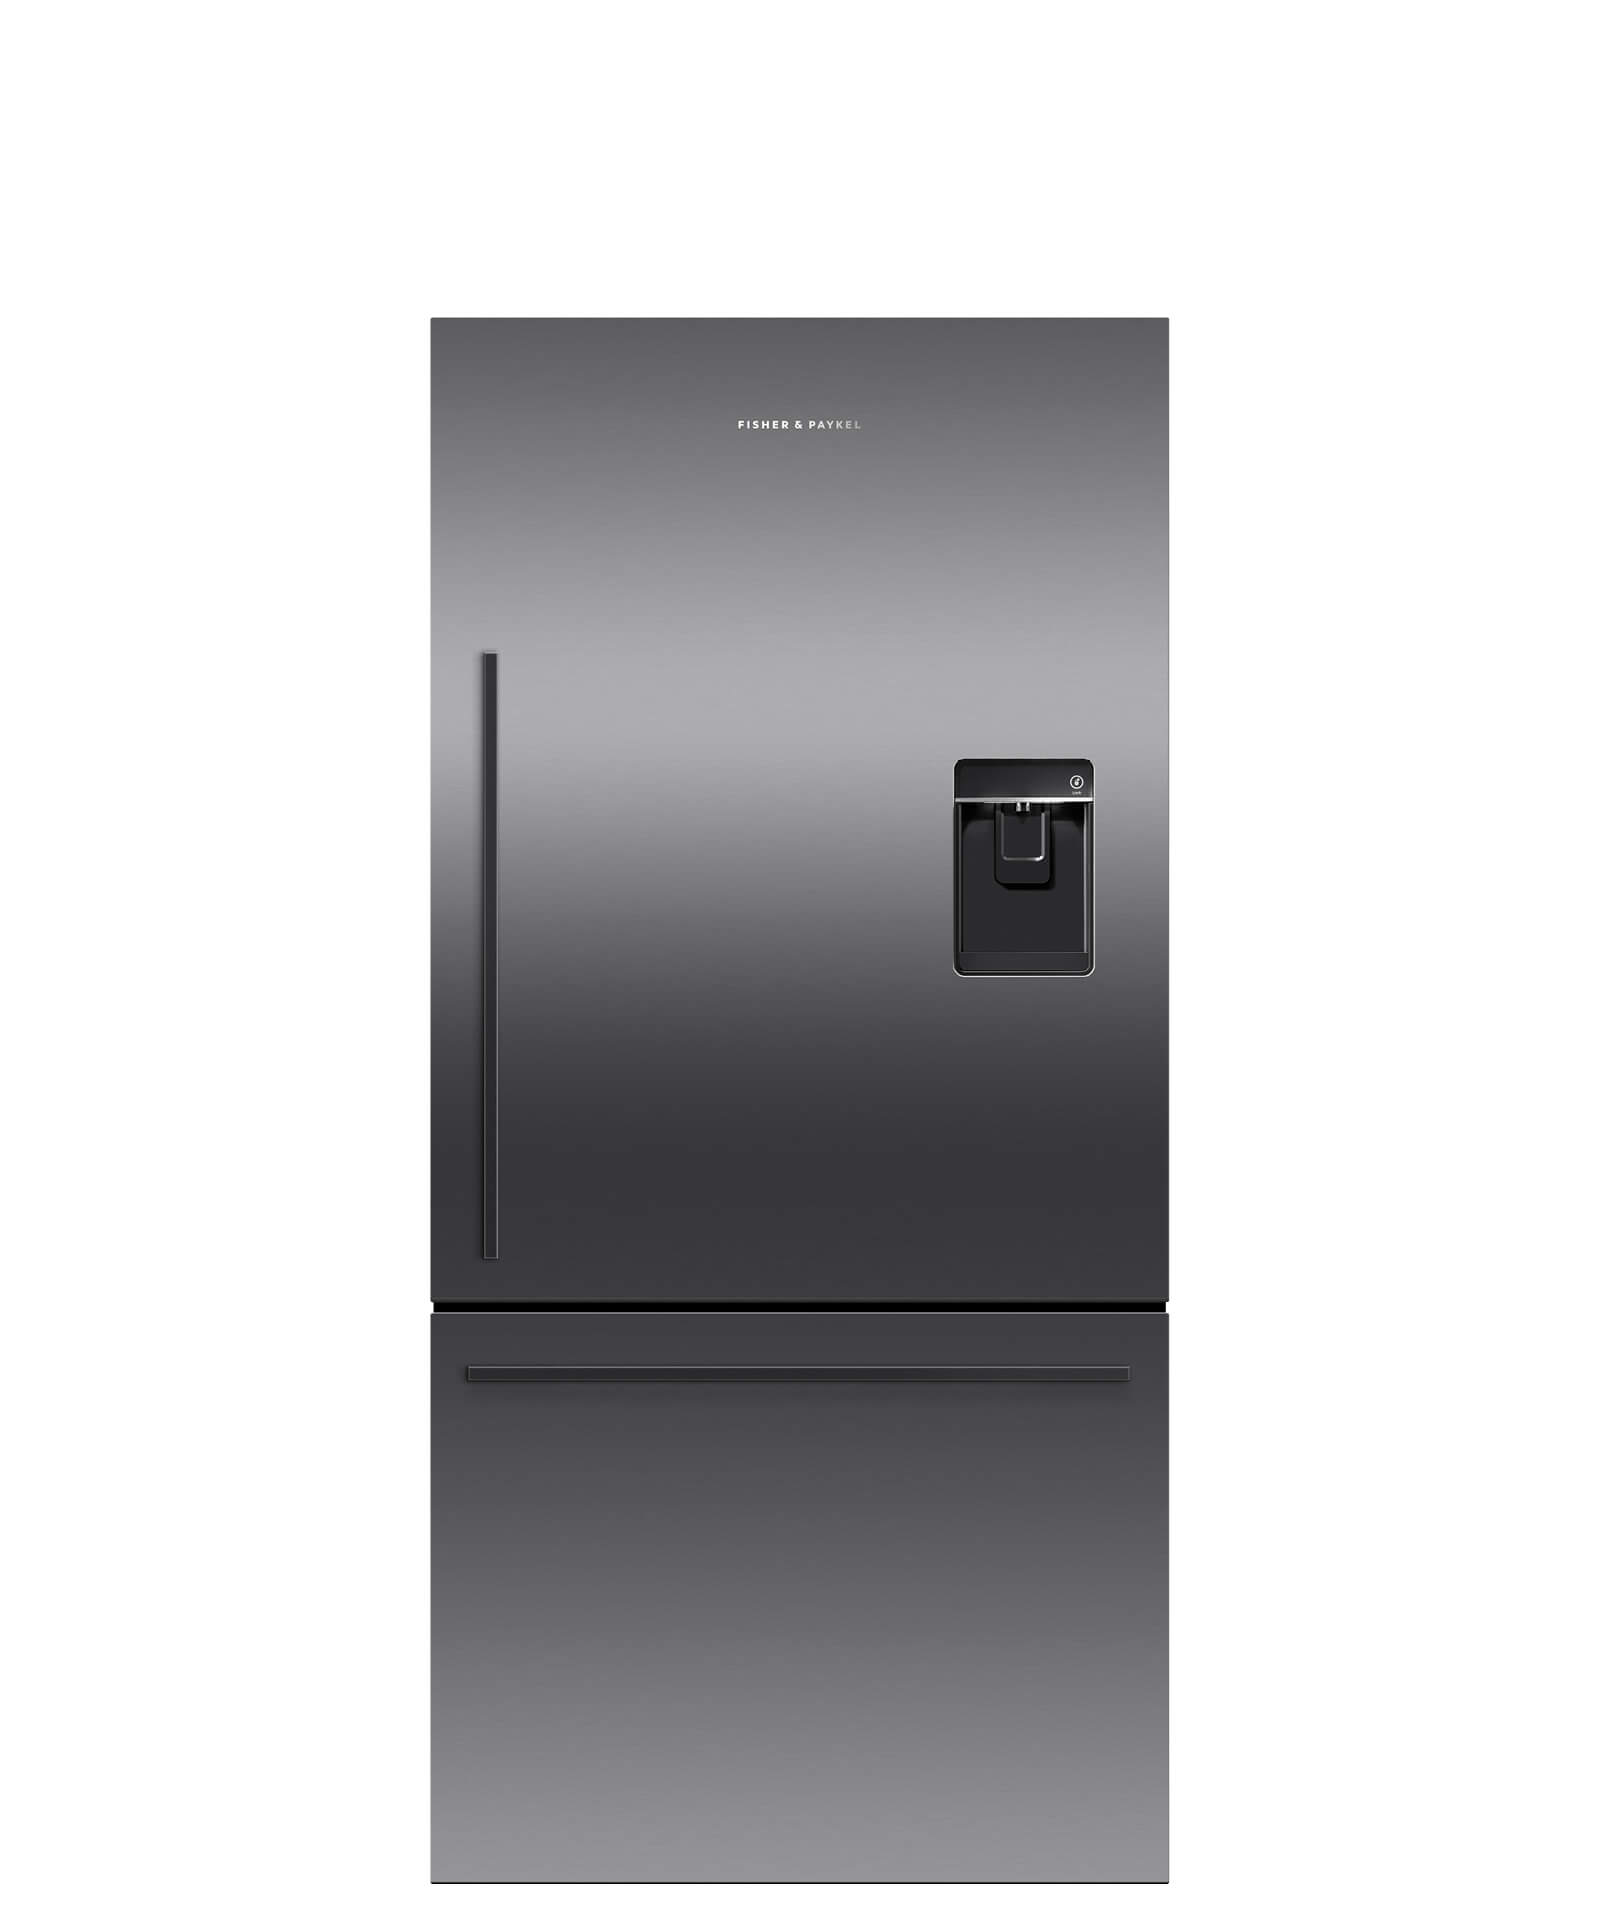 Fisher and Paykel Black Stainless Steel Counter Depth Refrigerator 17 cu ft, Ice & Water